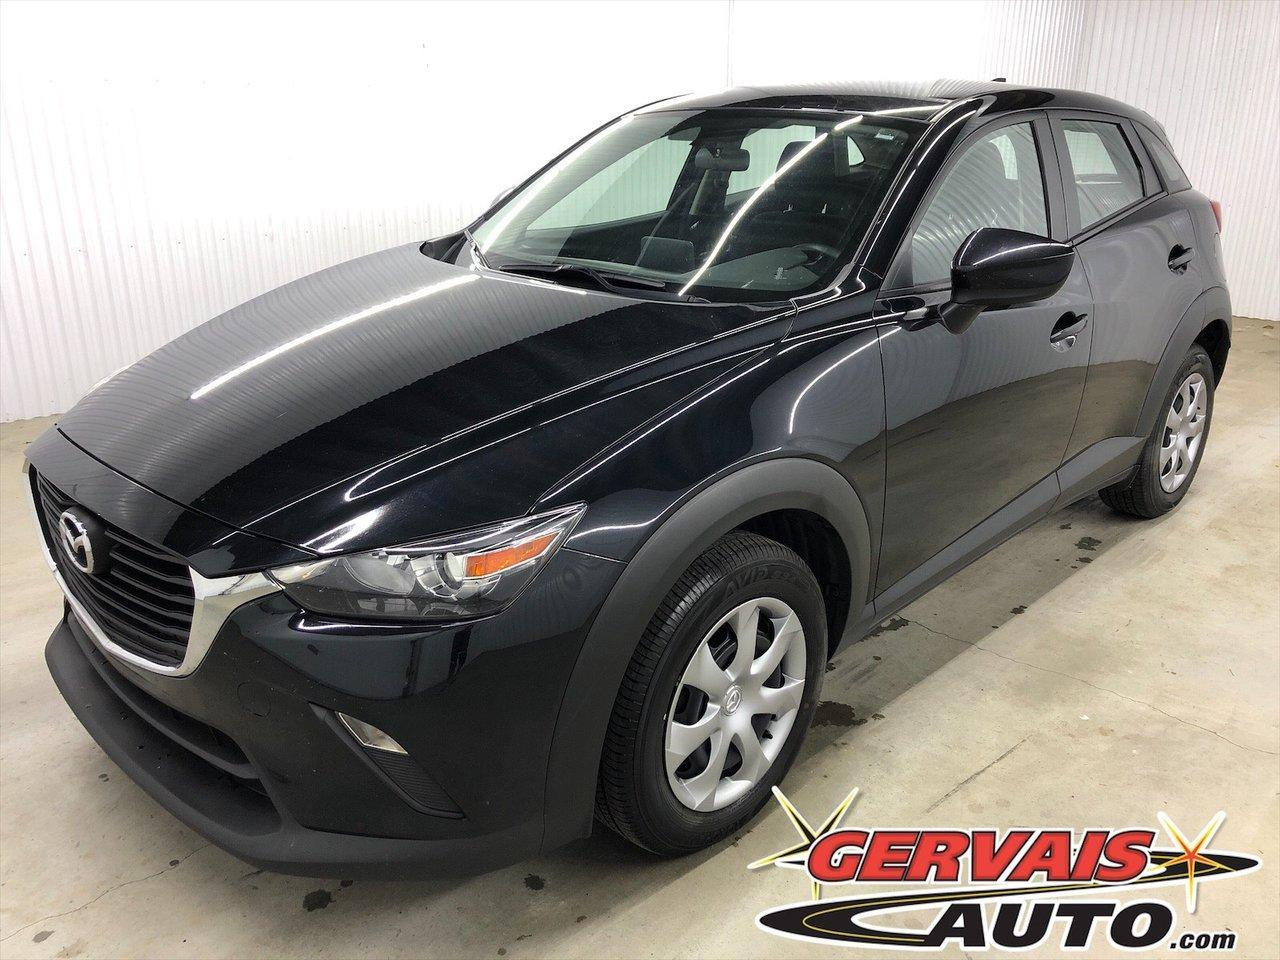 used 2017 mazda cx-3 gx a c navigation bluetooth for sale in shawinigan, quebec carpages.ca